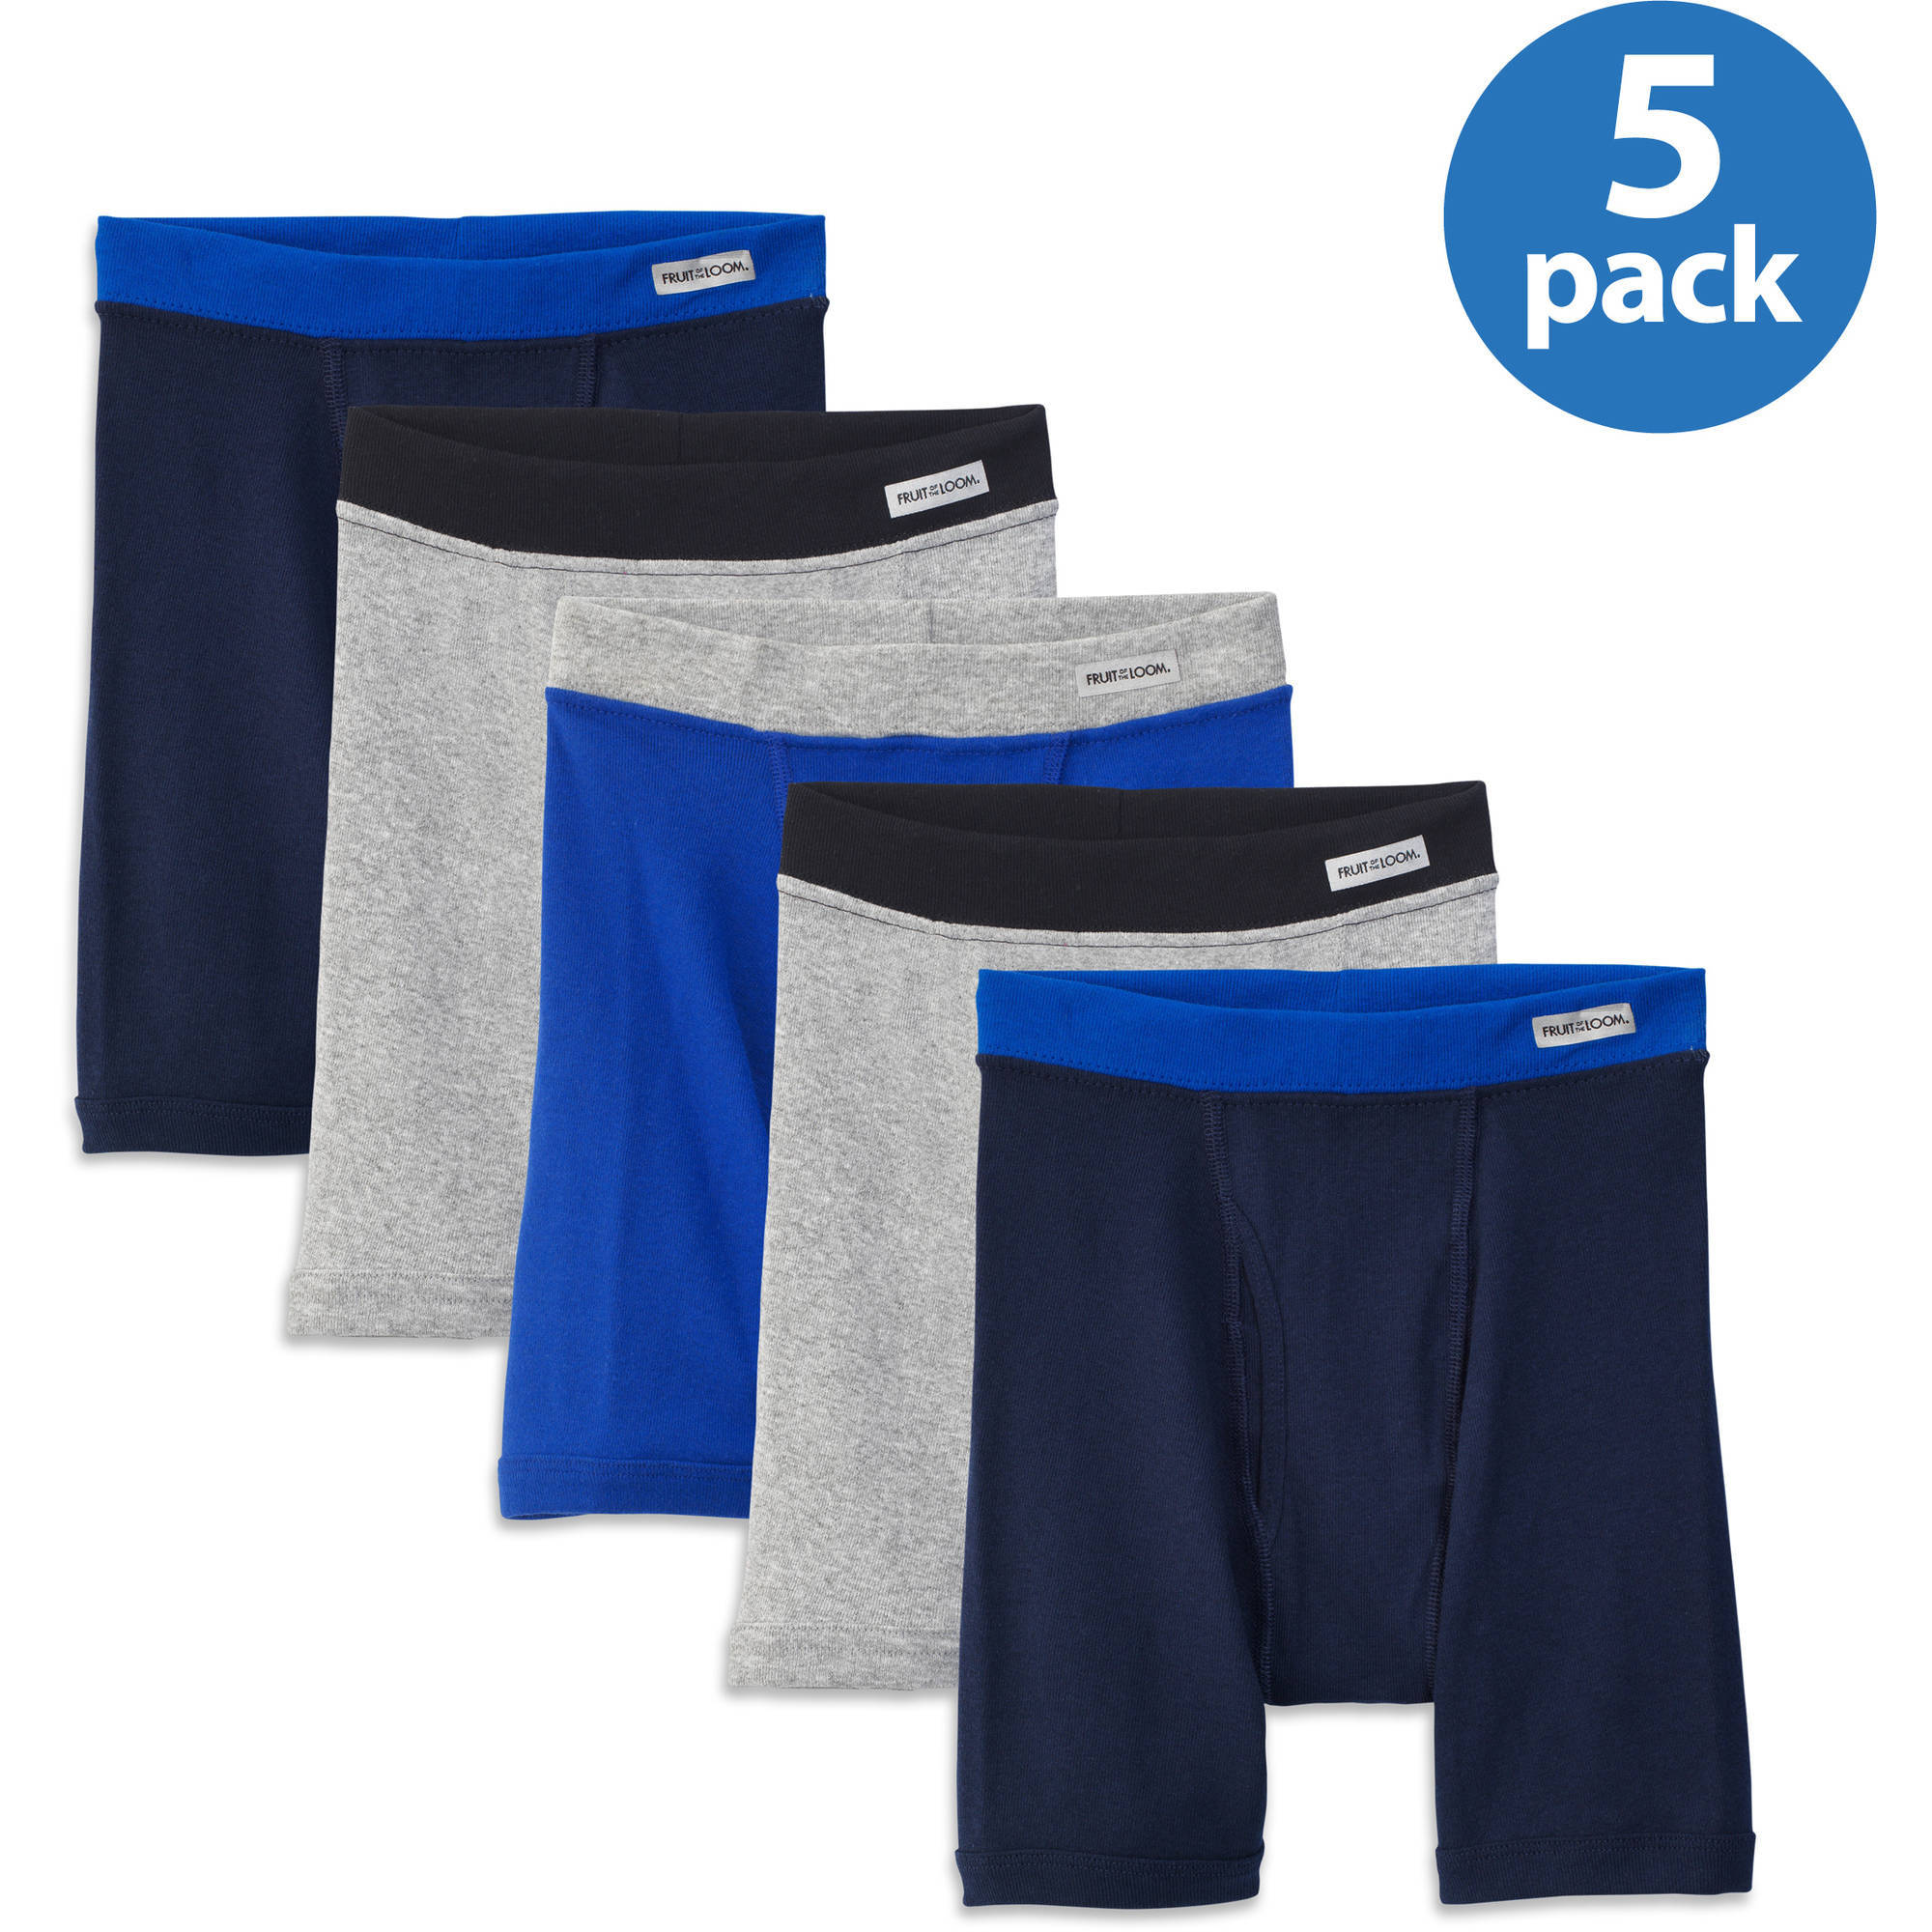 Fruit of the Loom - Boys' Boxer Briefs, 5-Pack